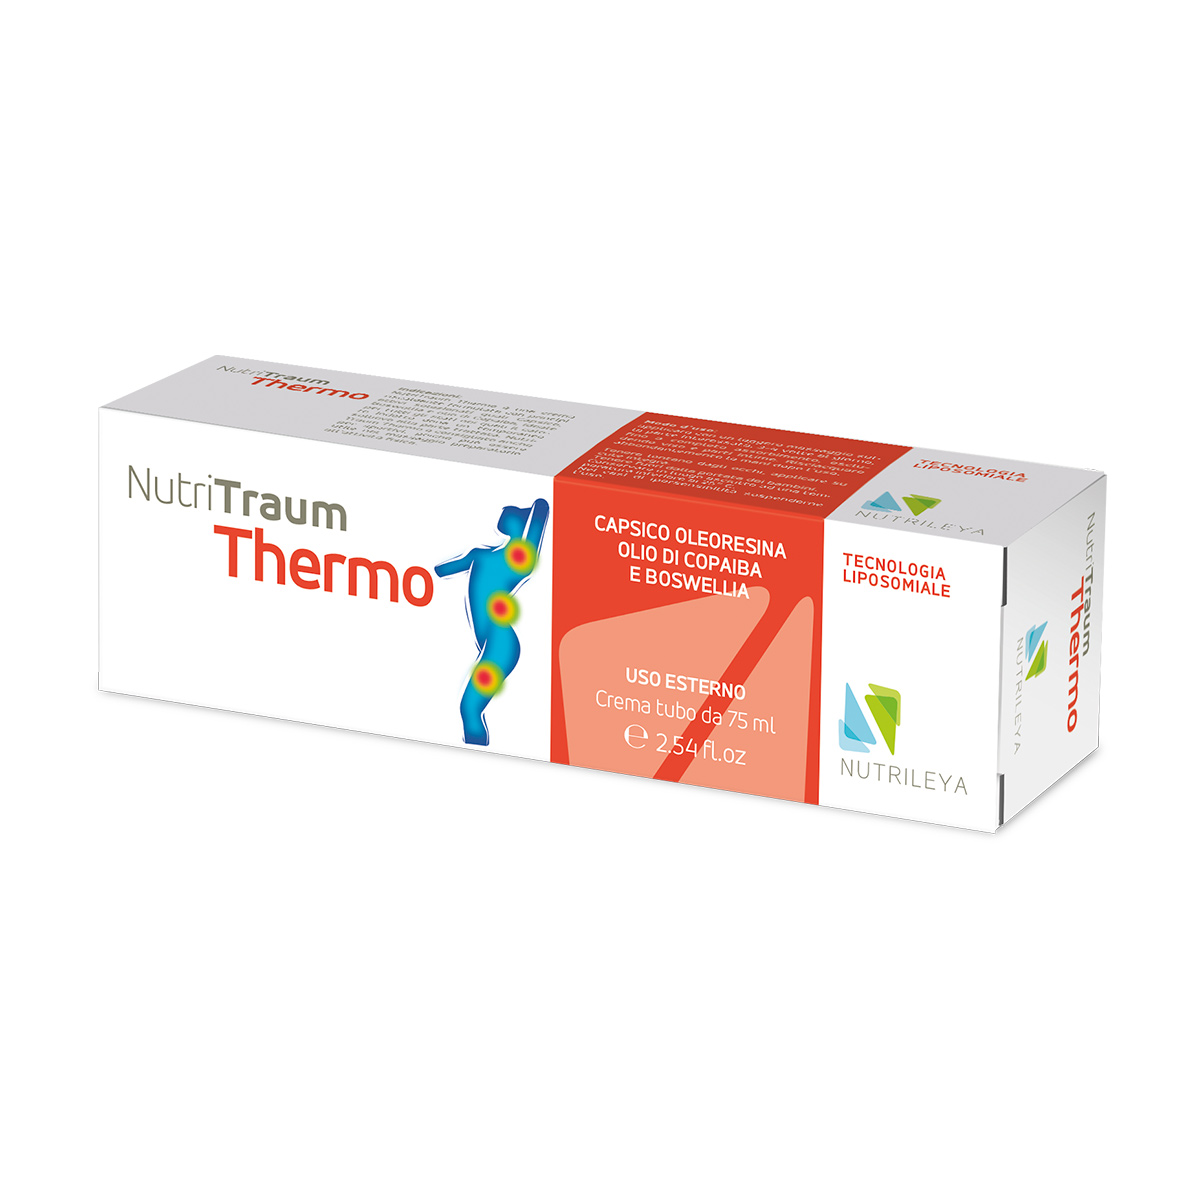 Nutritraum Thermo